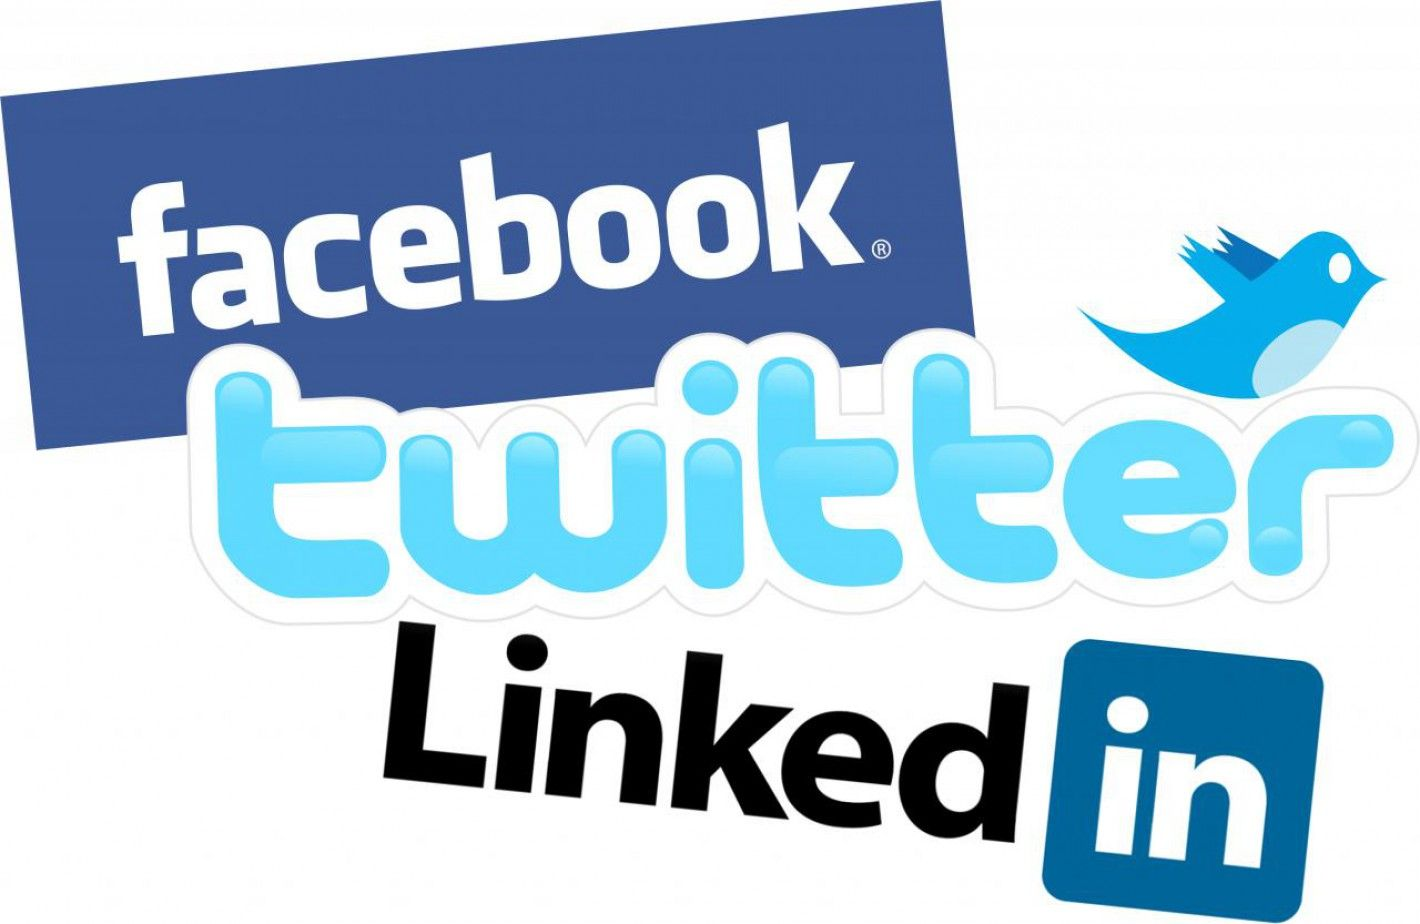 cambiar correo electronico Twitter, Facebook, LinkedIn